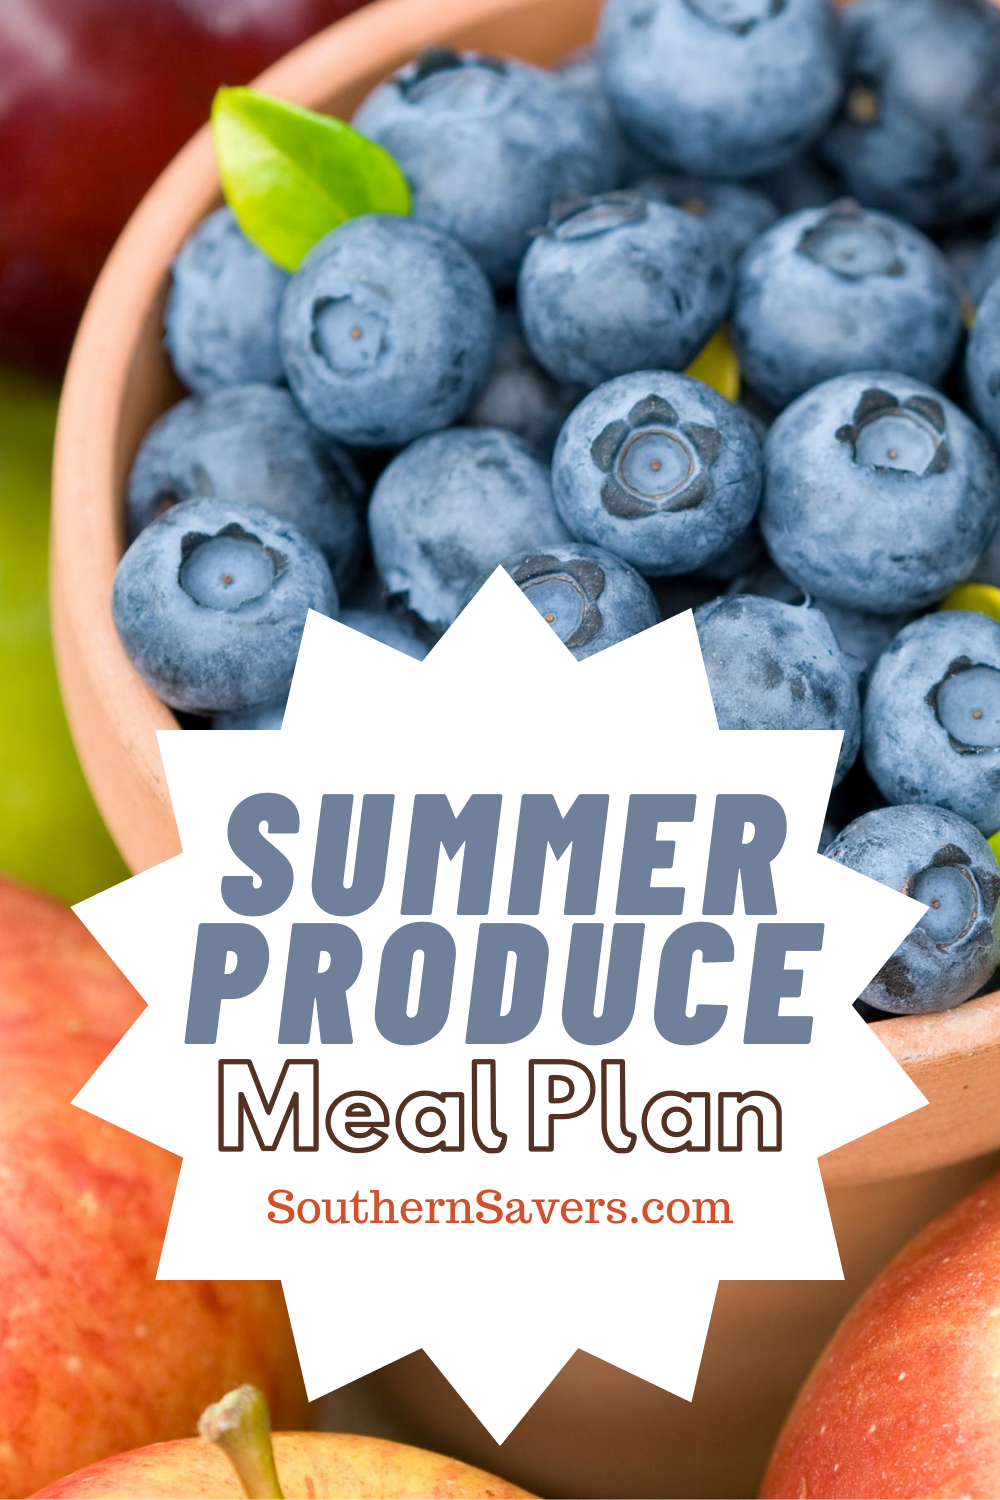 Inspiration for this meal plan came from the surplus of summer produce available at the grocery store, the farmers market, and maybe even your own garden!